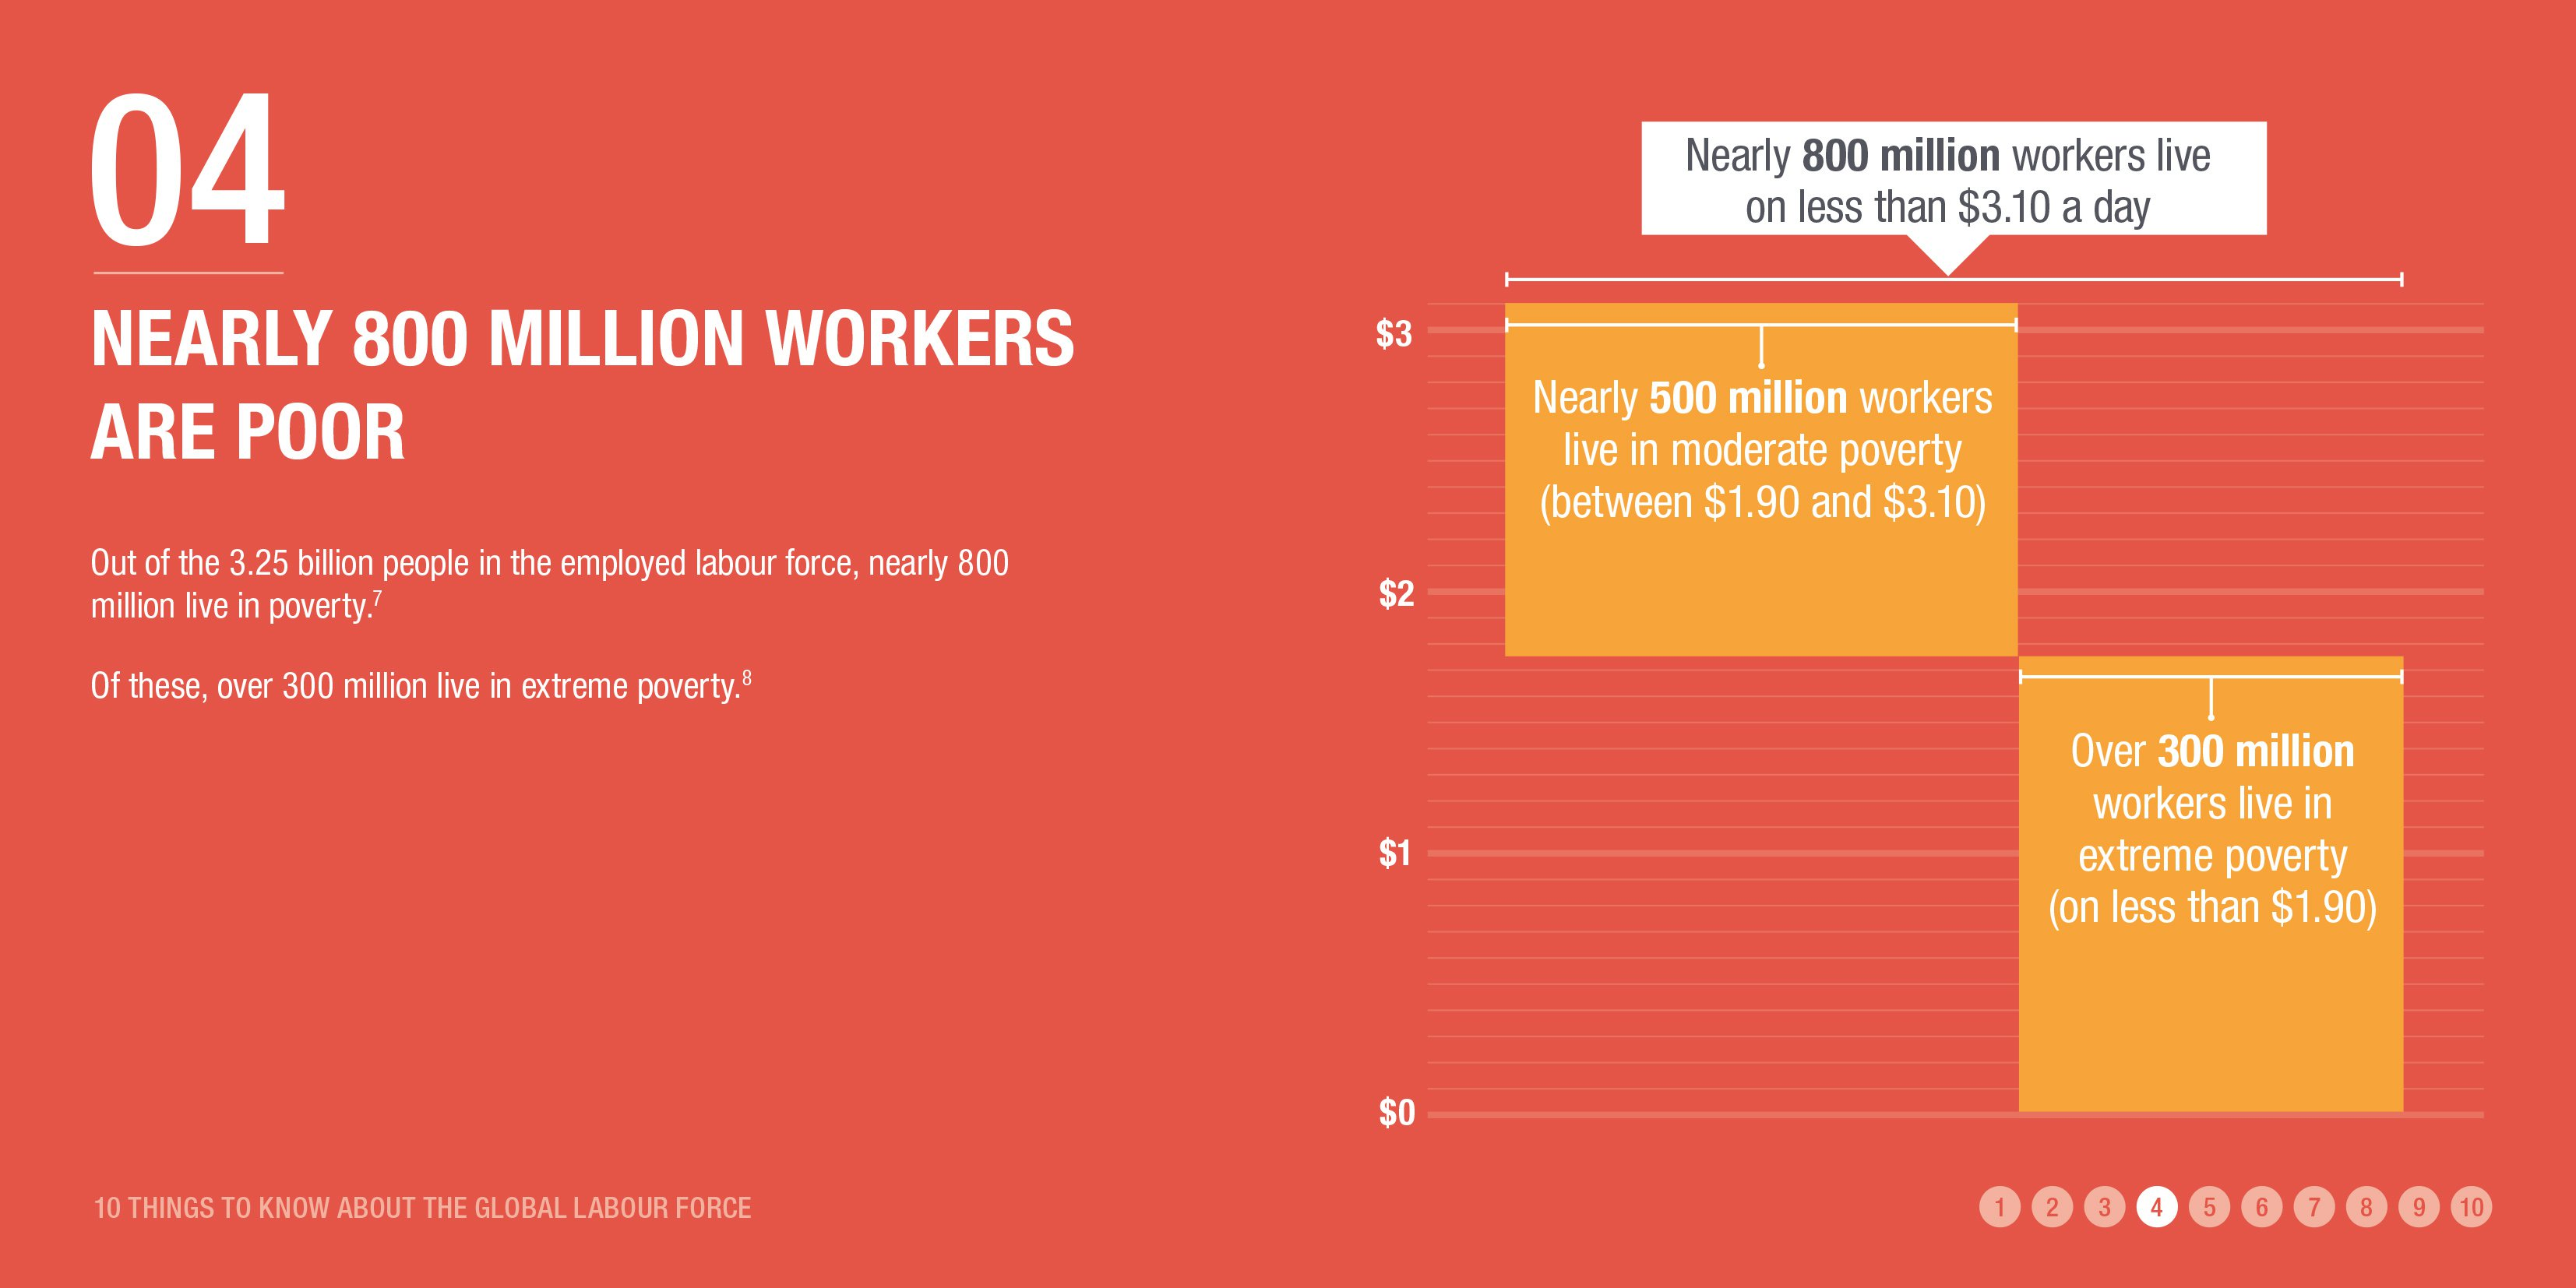 Nearly 800 million workers are poor